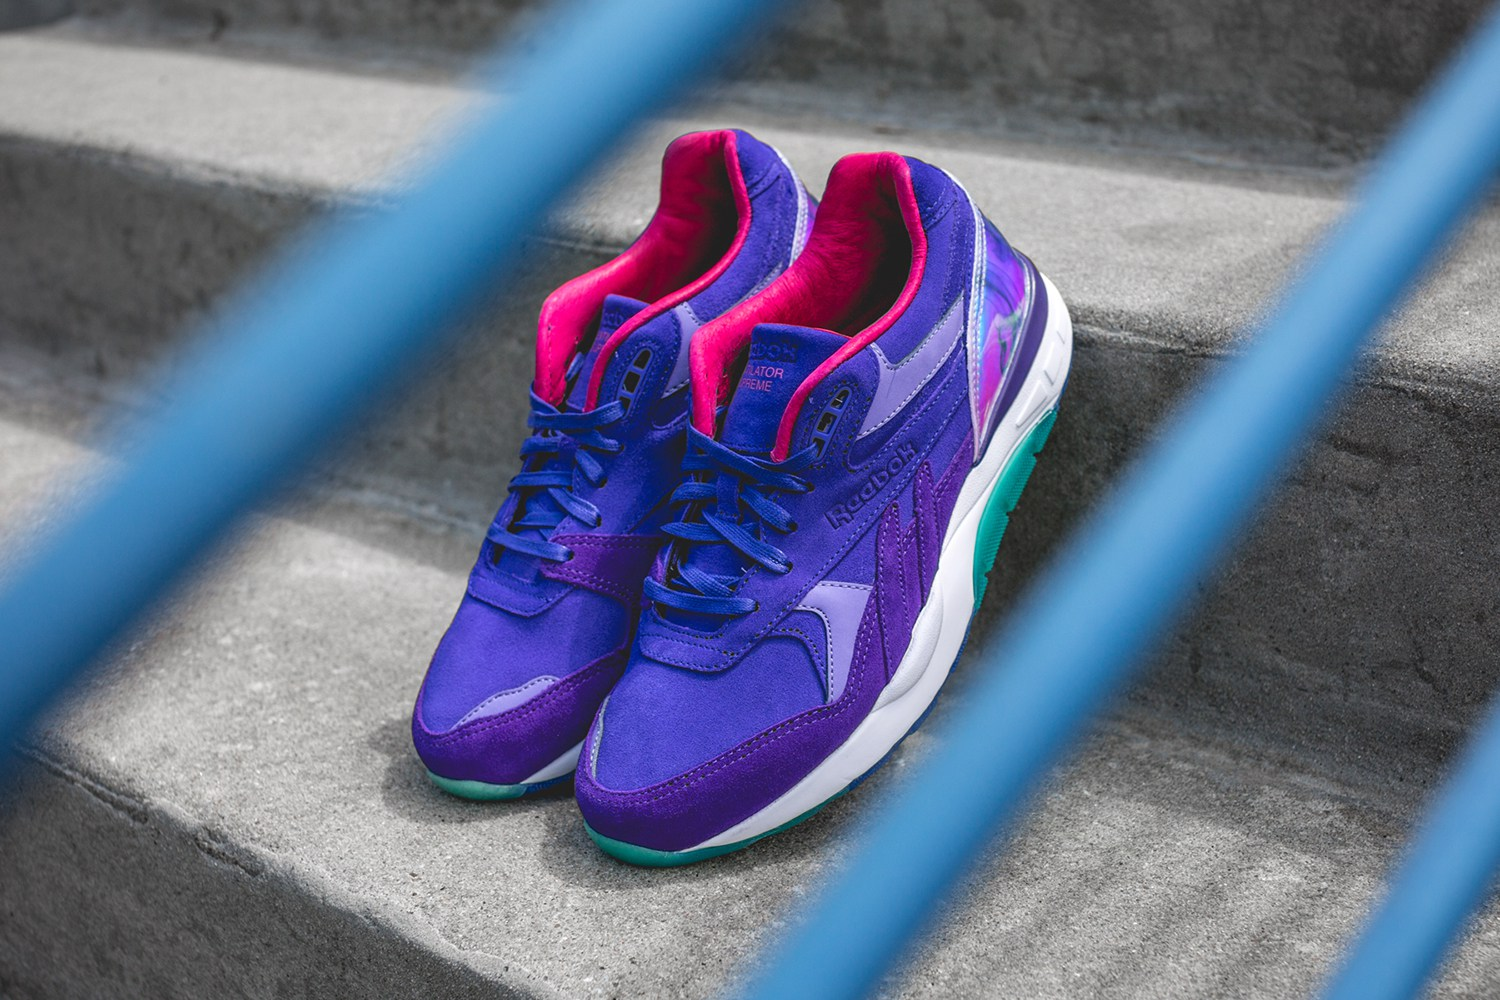 Reebok Channels Cam'ron's 'Purple Haze' on the Ventilator Supreme